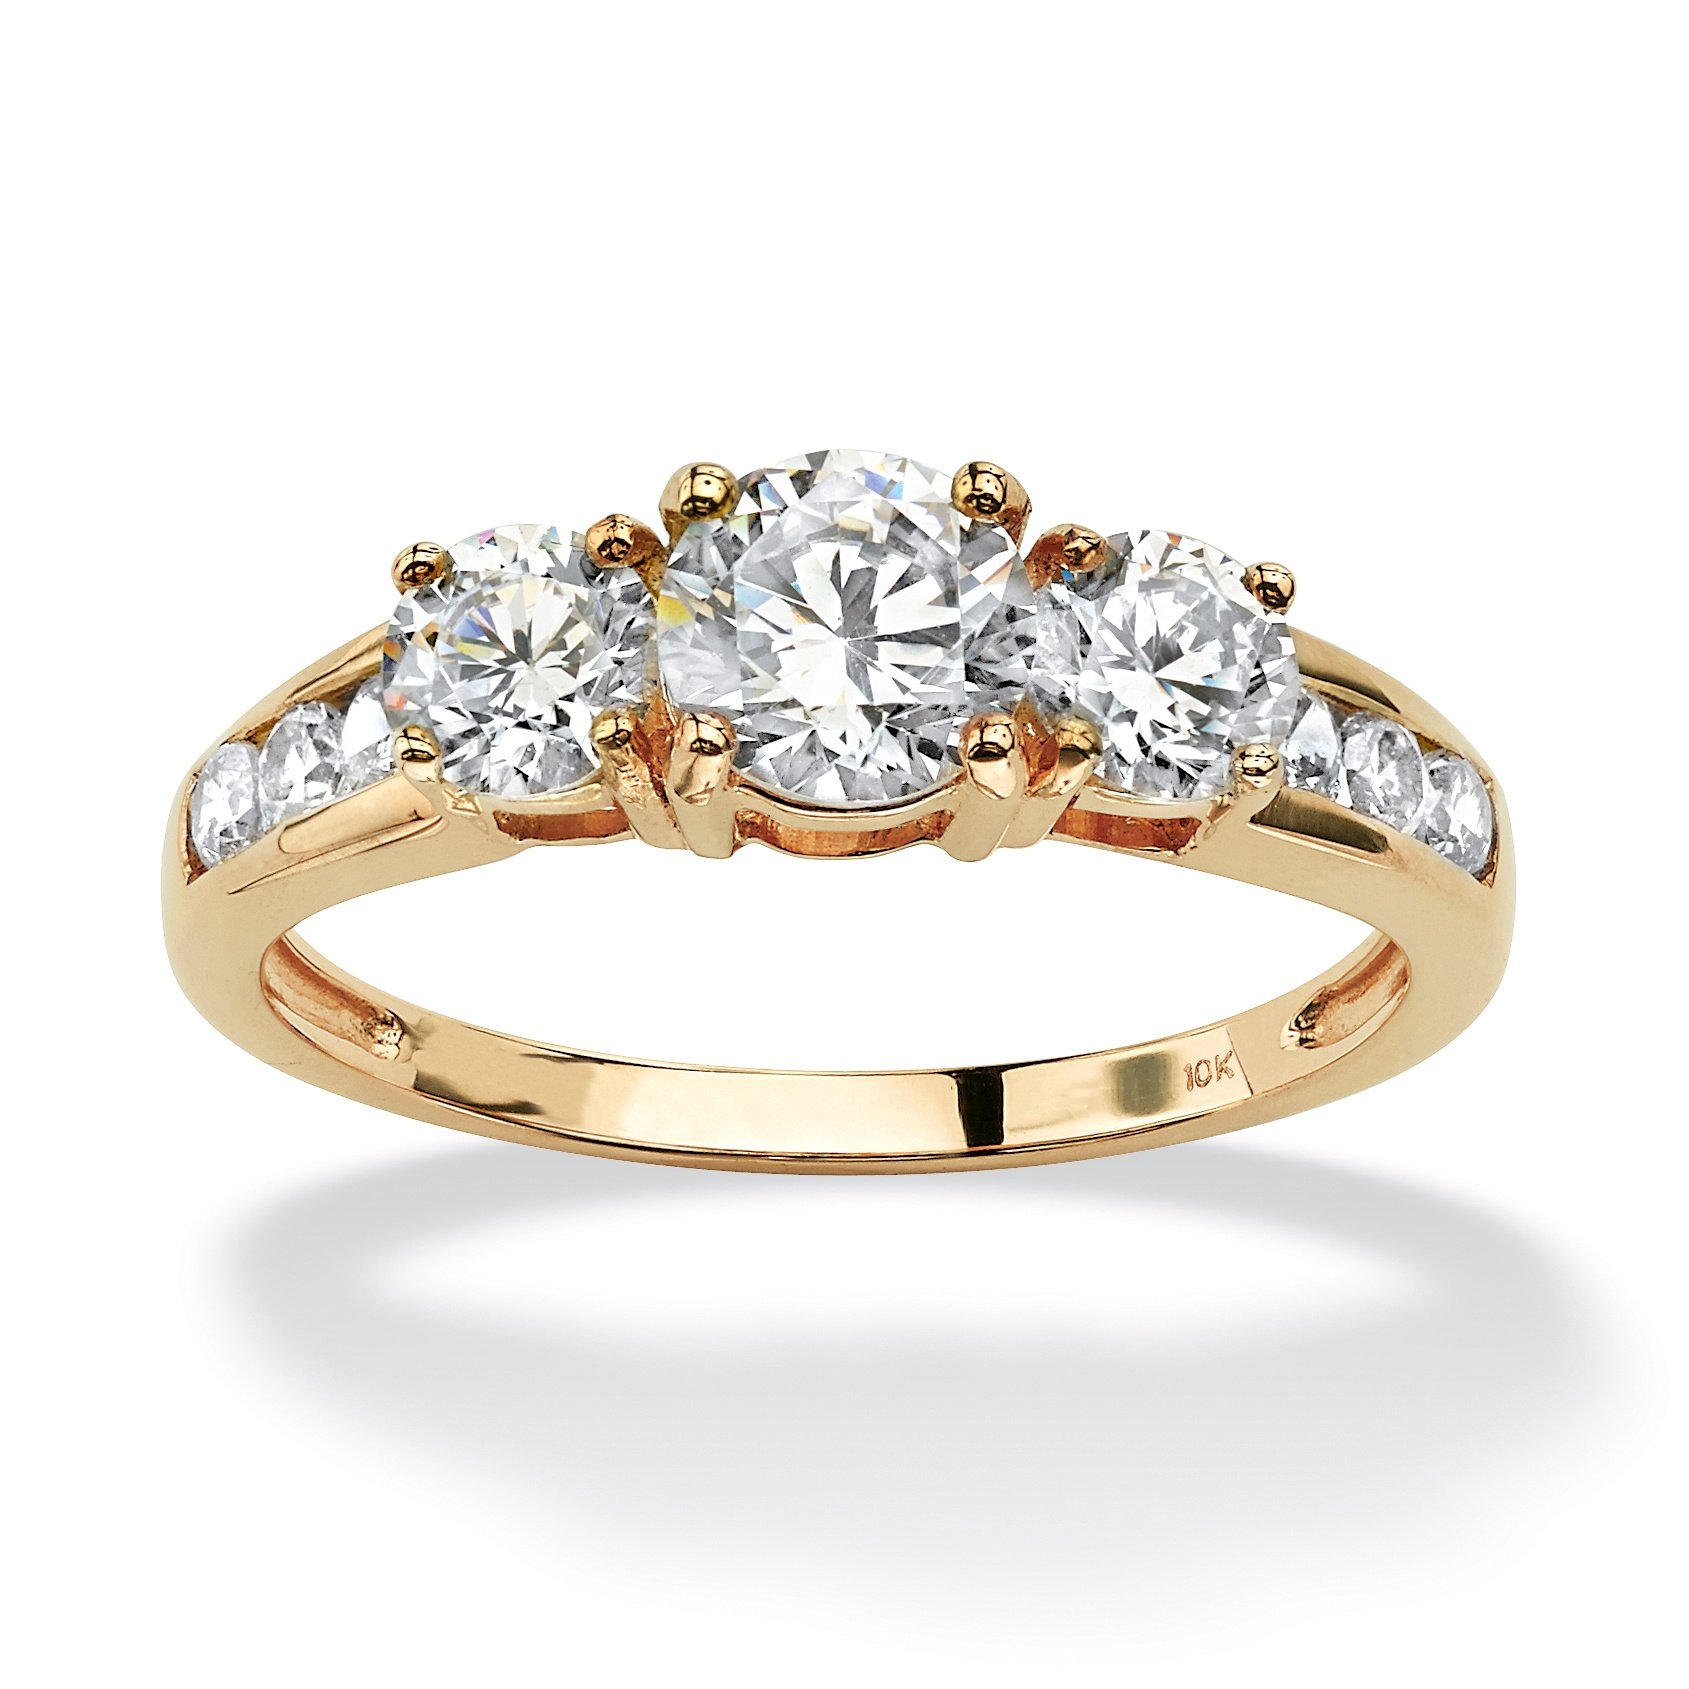 1.88 TCW Round Cubic Zirconia Engagement Anniversary Ring in 10k Gold